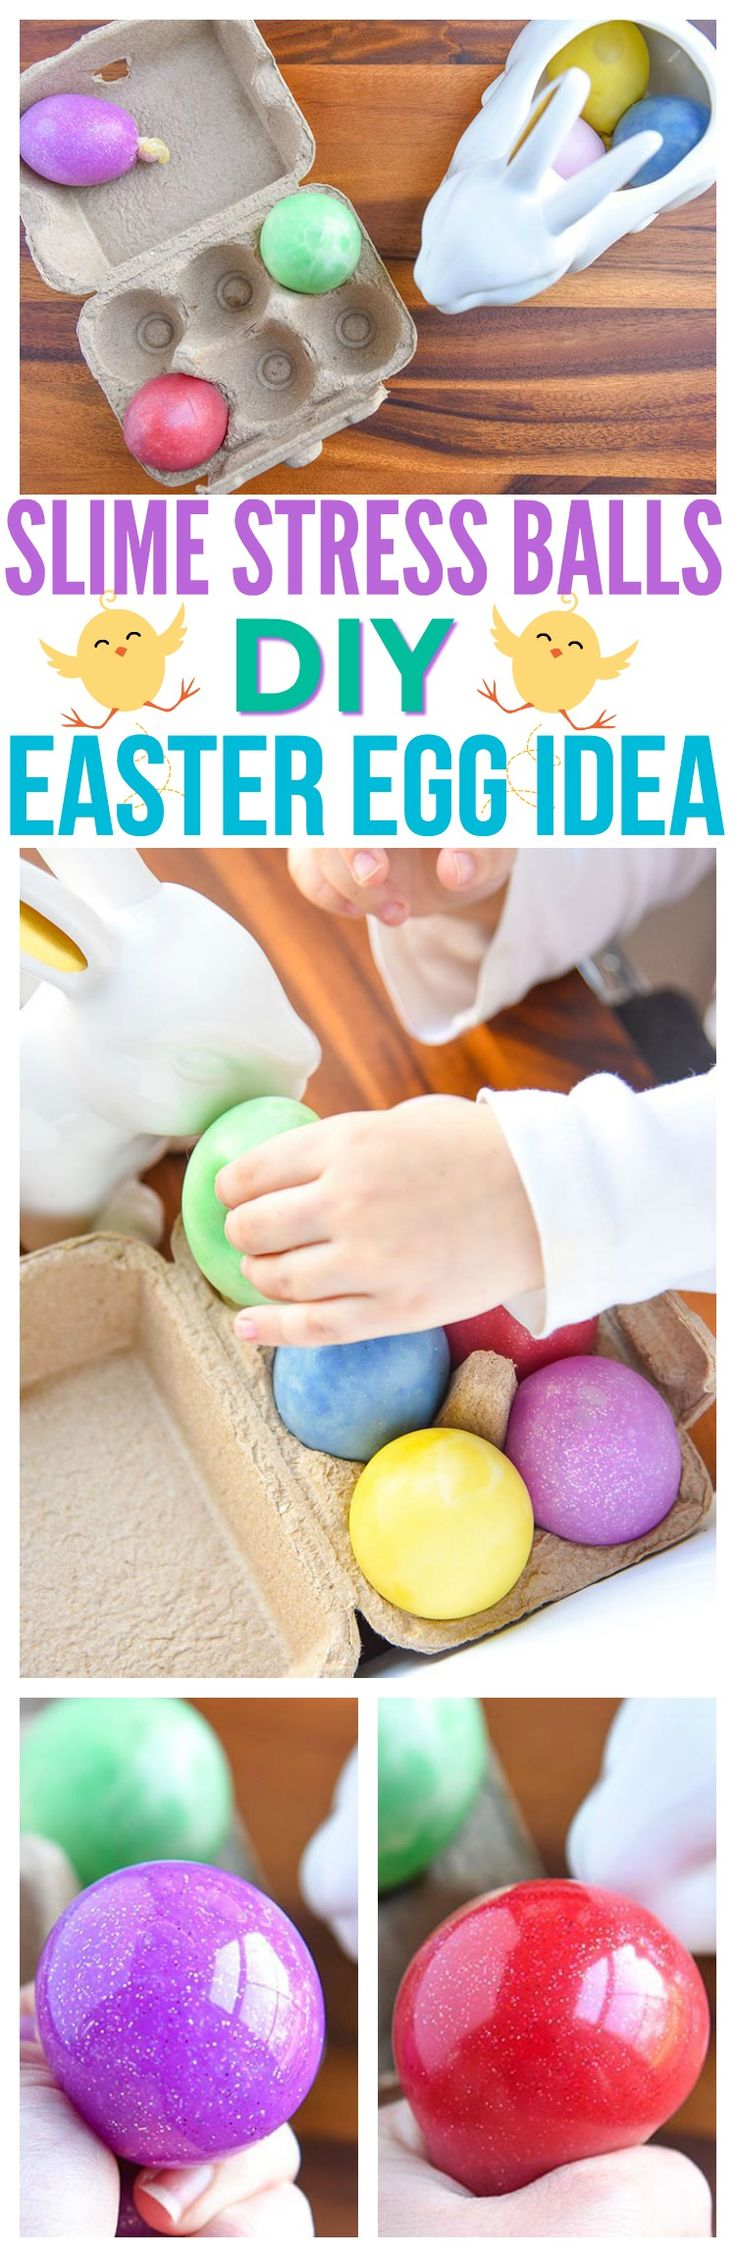 stress balls diy slime recipe without borax easy slime recipe for kids easter egg ideas easter crafts for toddlers easy diy slime recipe fun crafts for kids via @CourtneysSweets